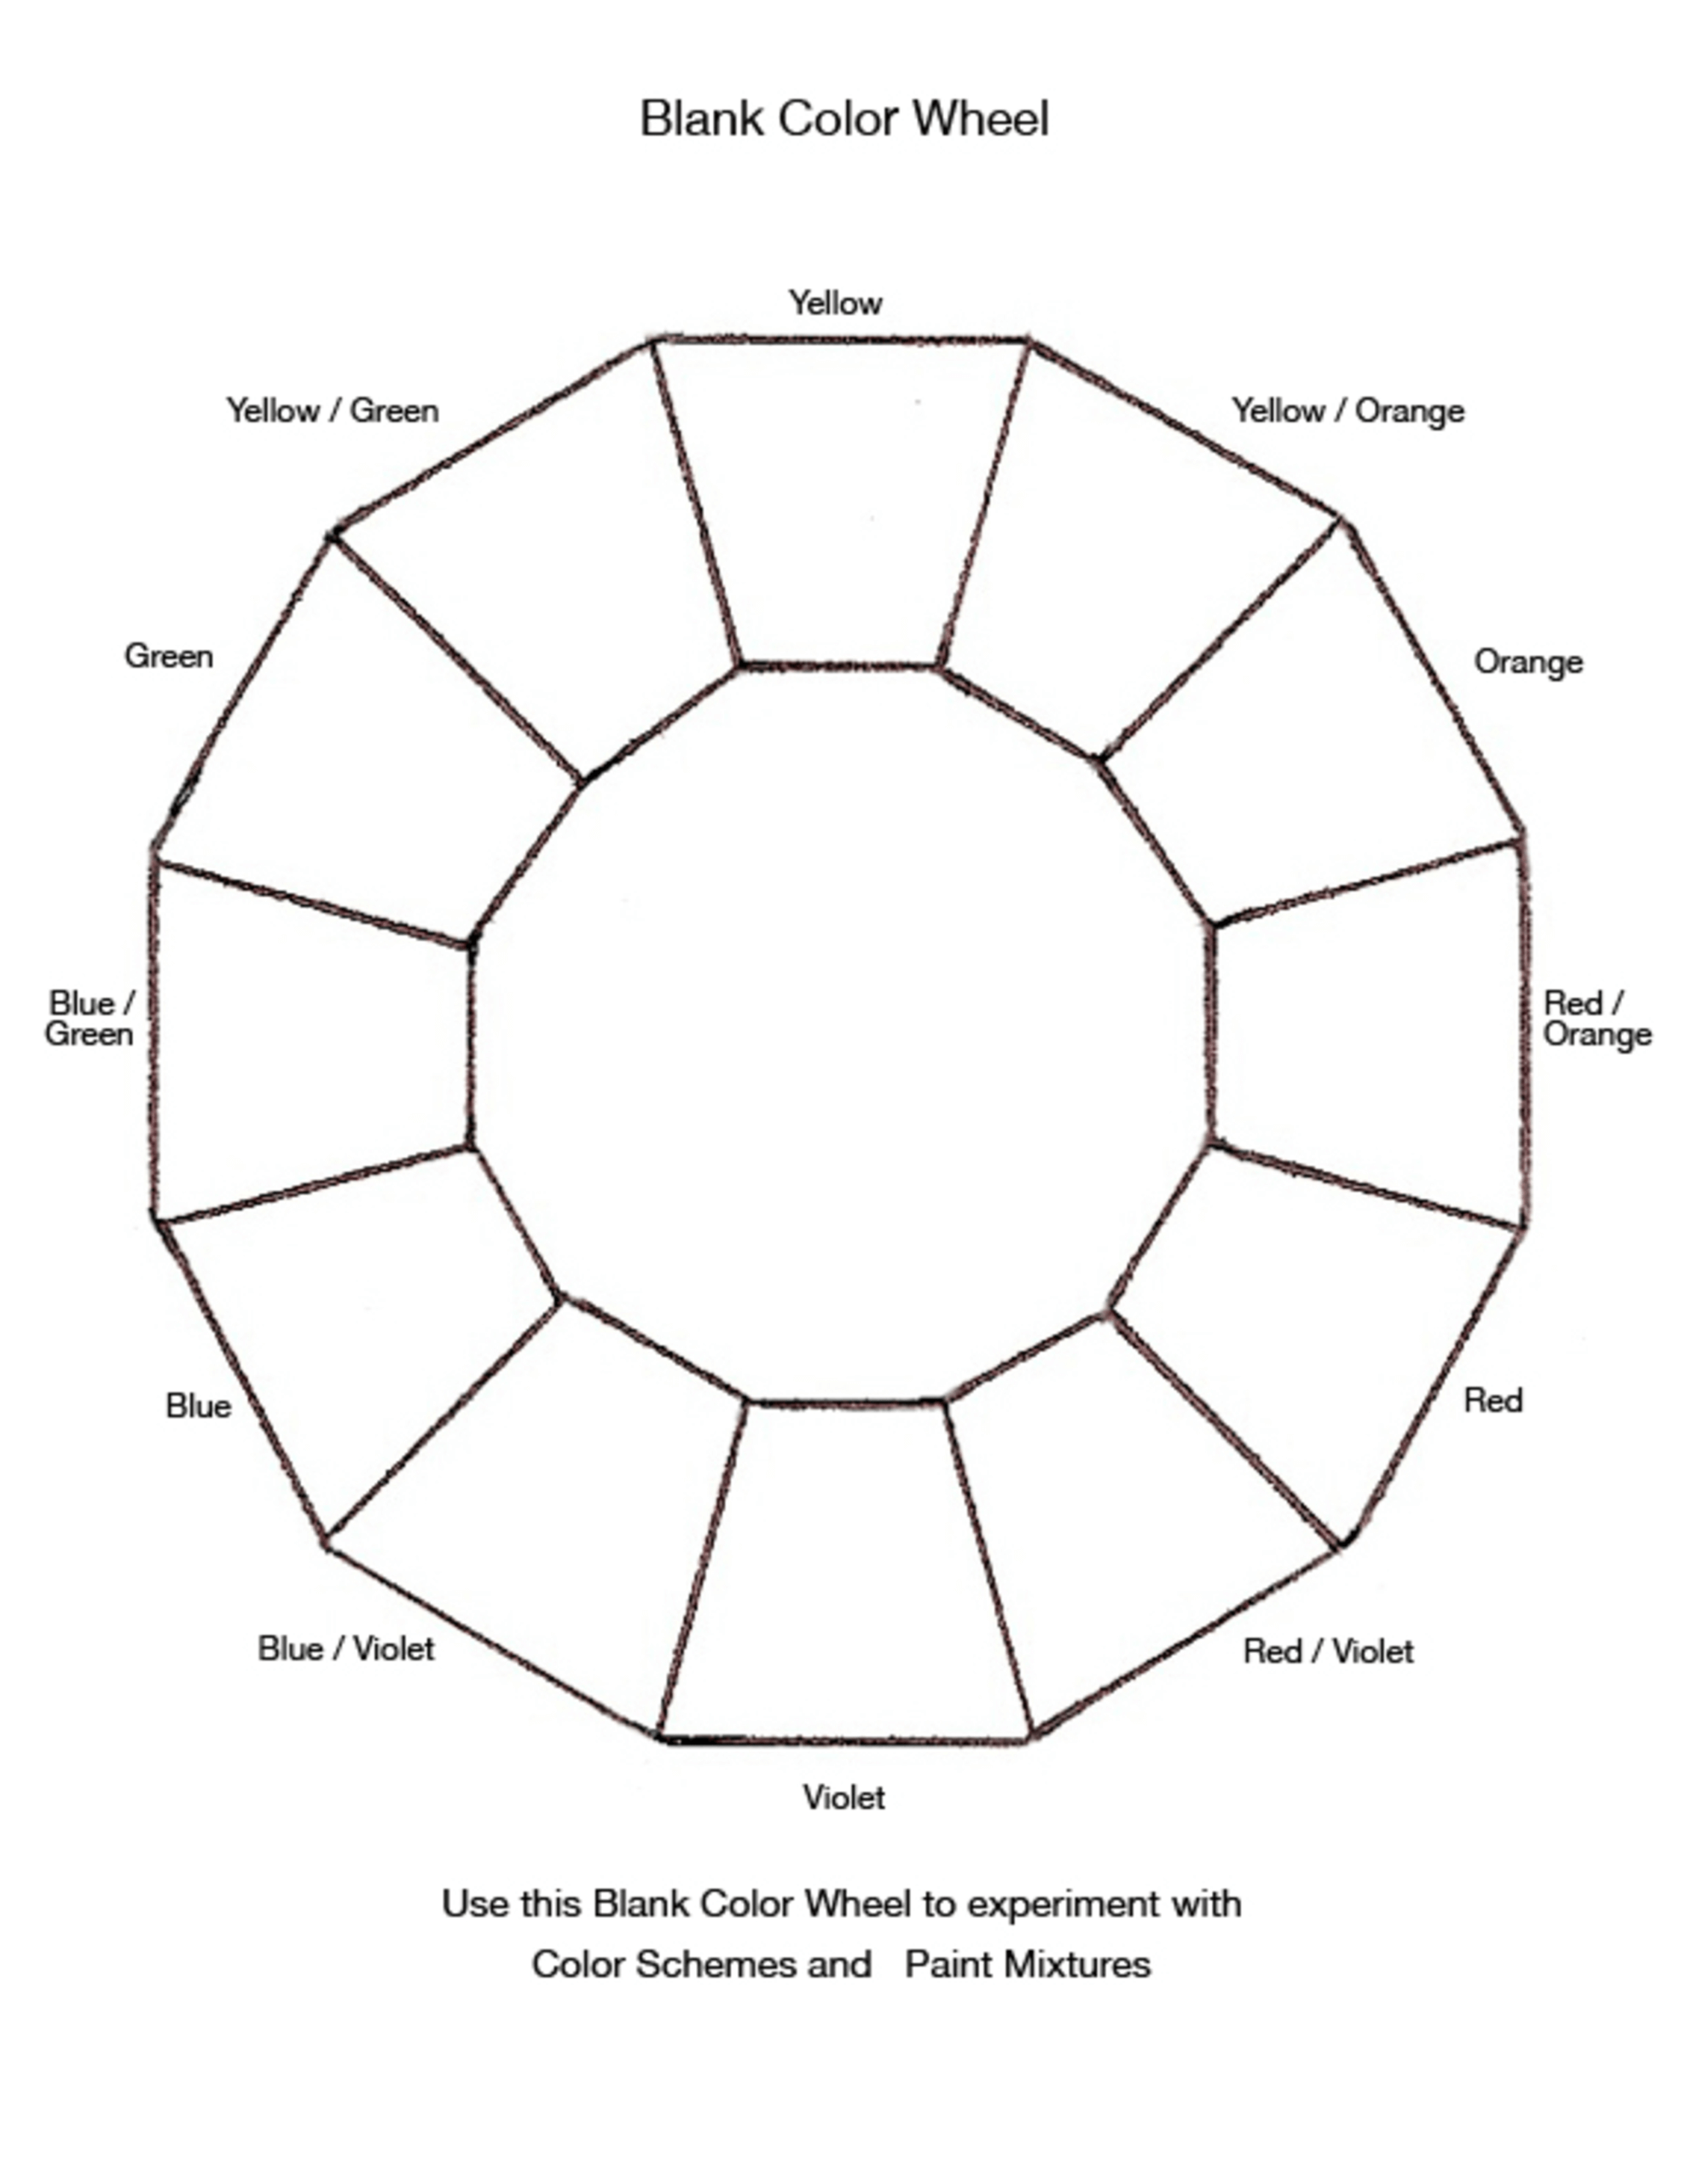 Blank Color Wheel Chart | Templates At Allbusinesstemplates With Blank Color Wheel Template